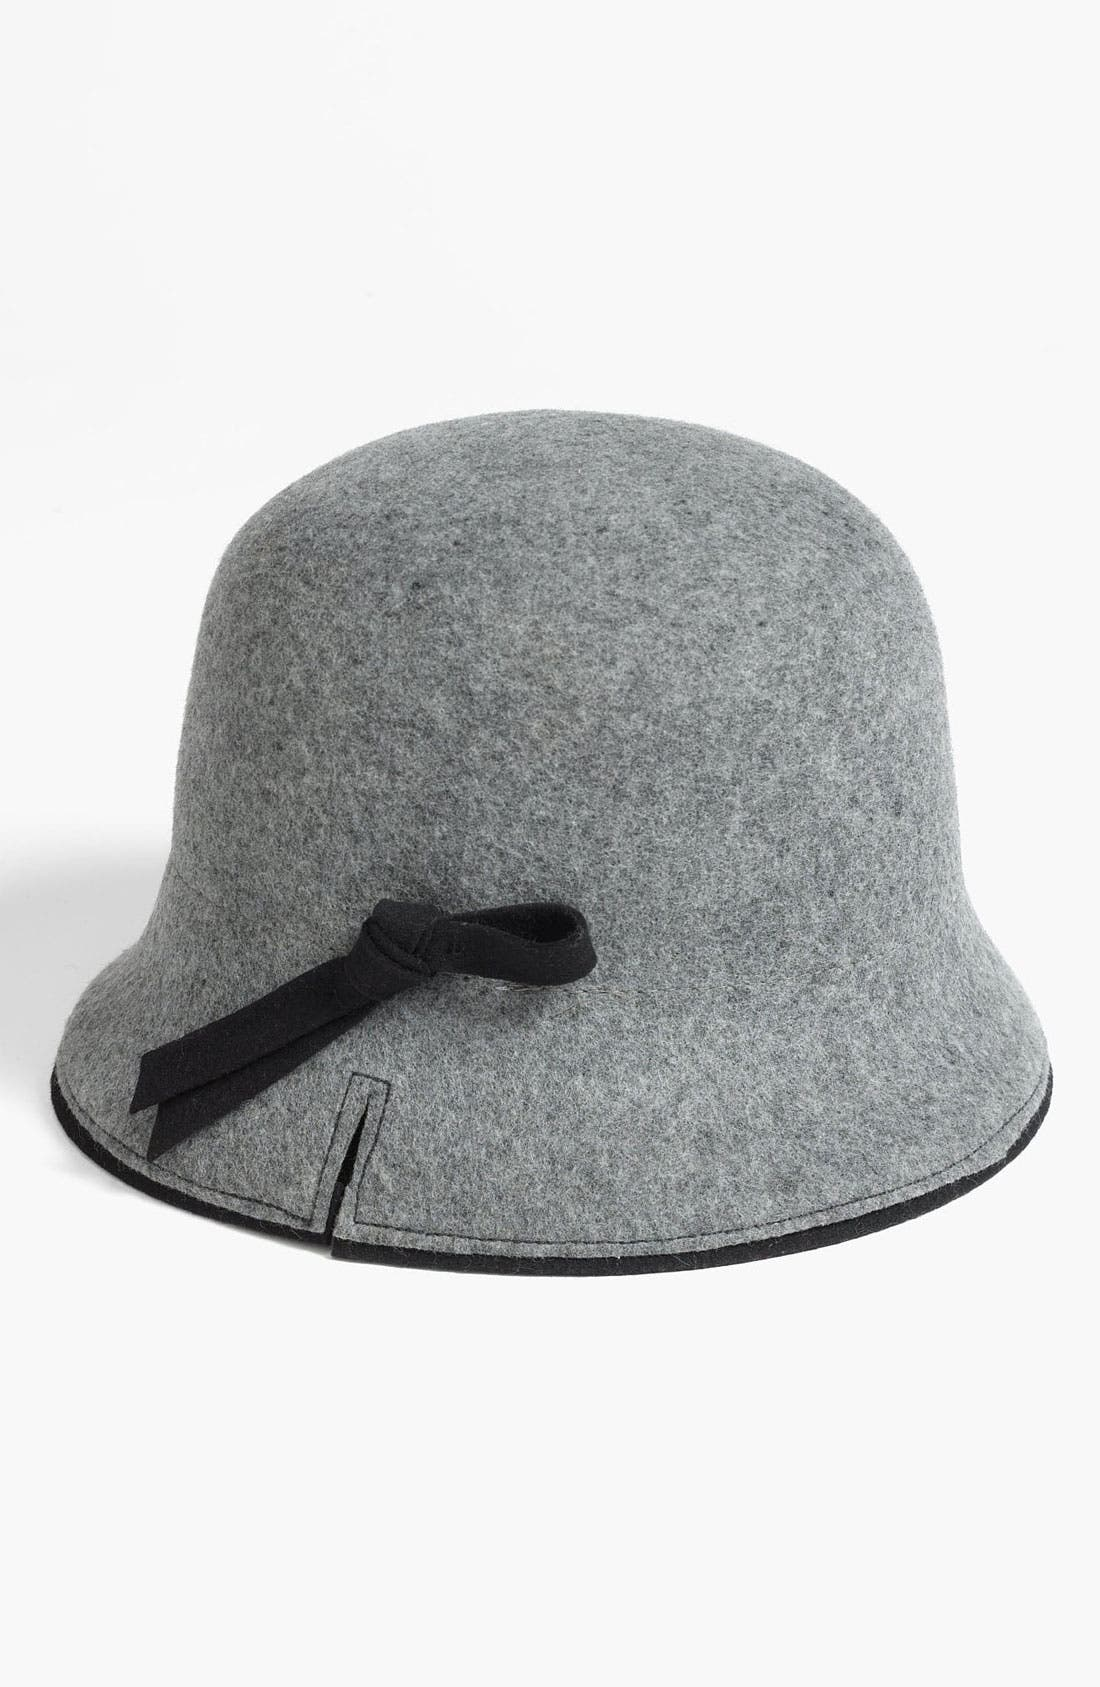 Main Image - Nordstrom Wool Cloche